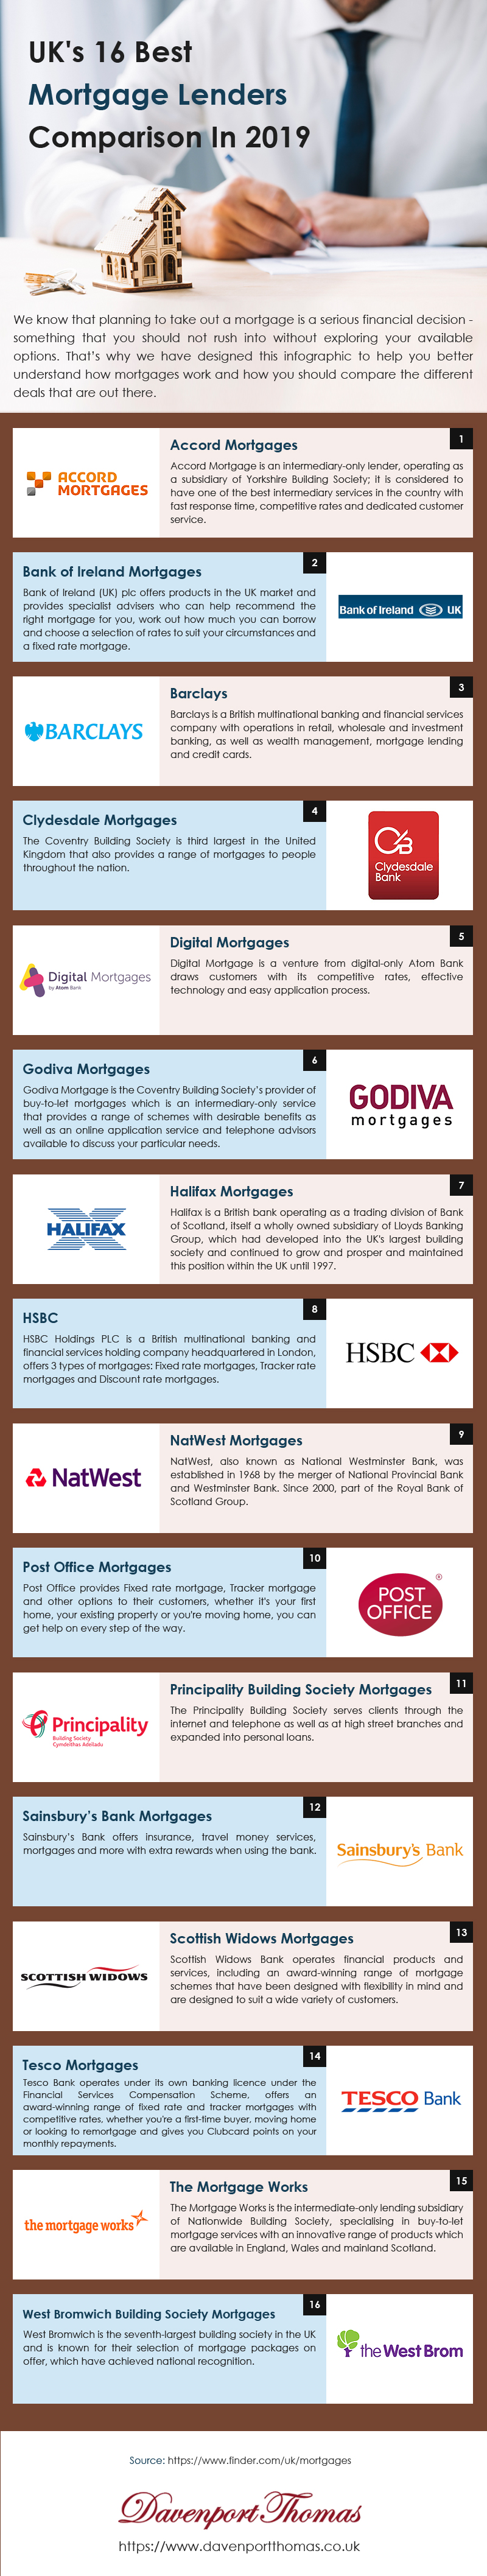 Best Mortgage Lenders Comparison